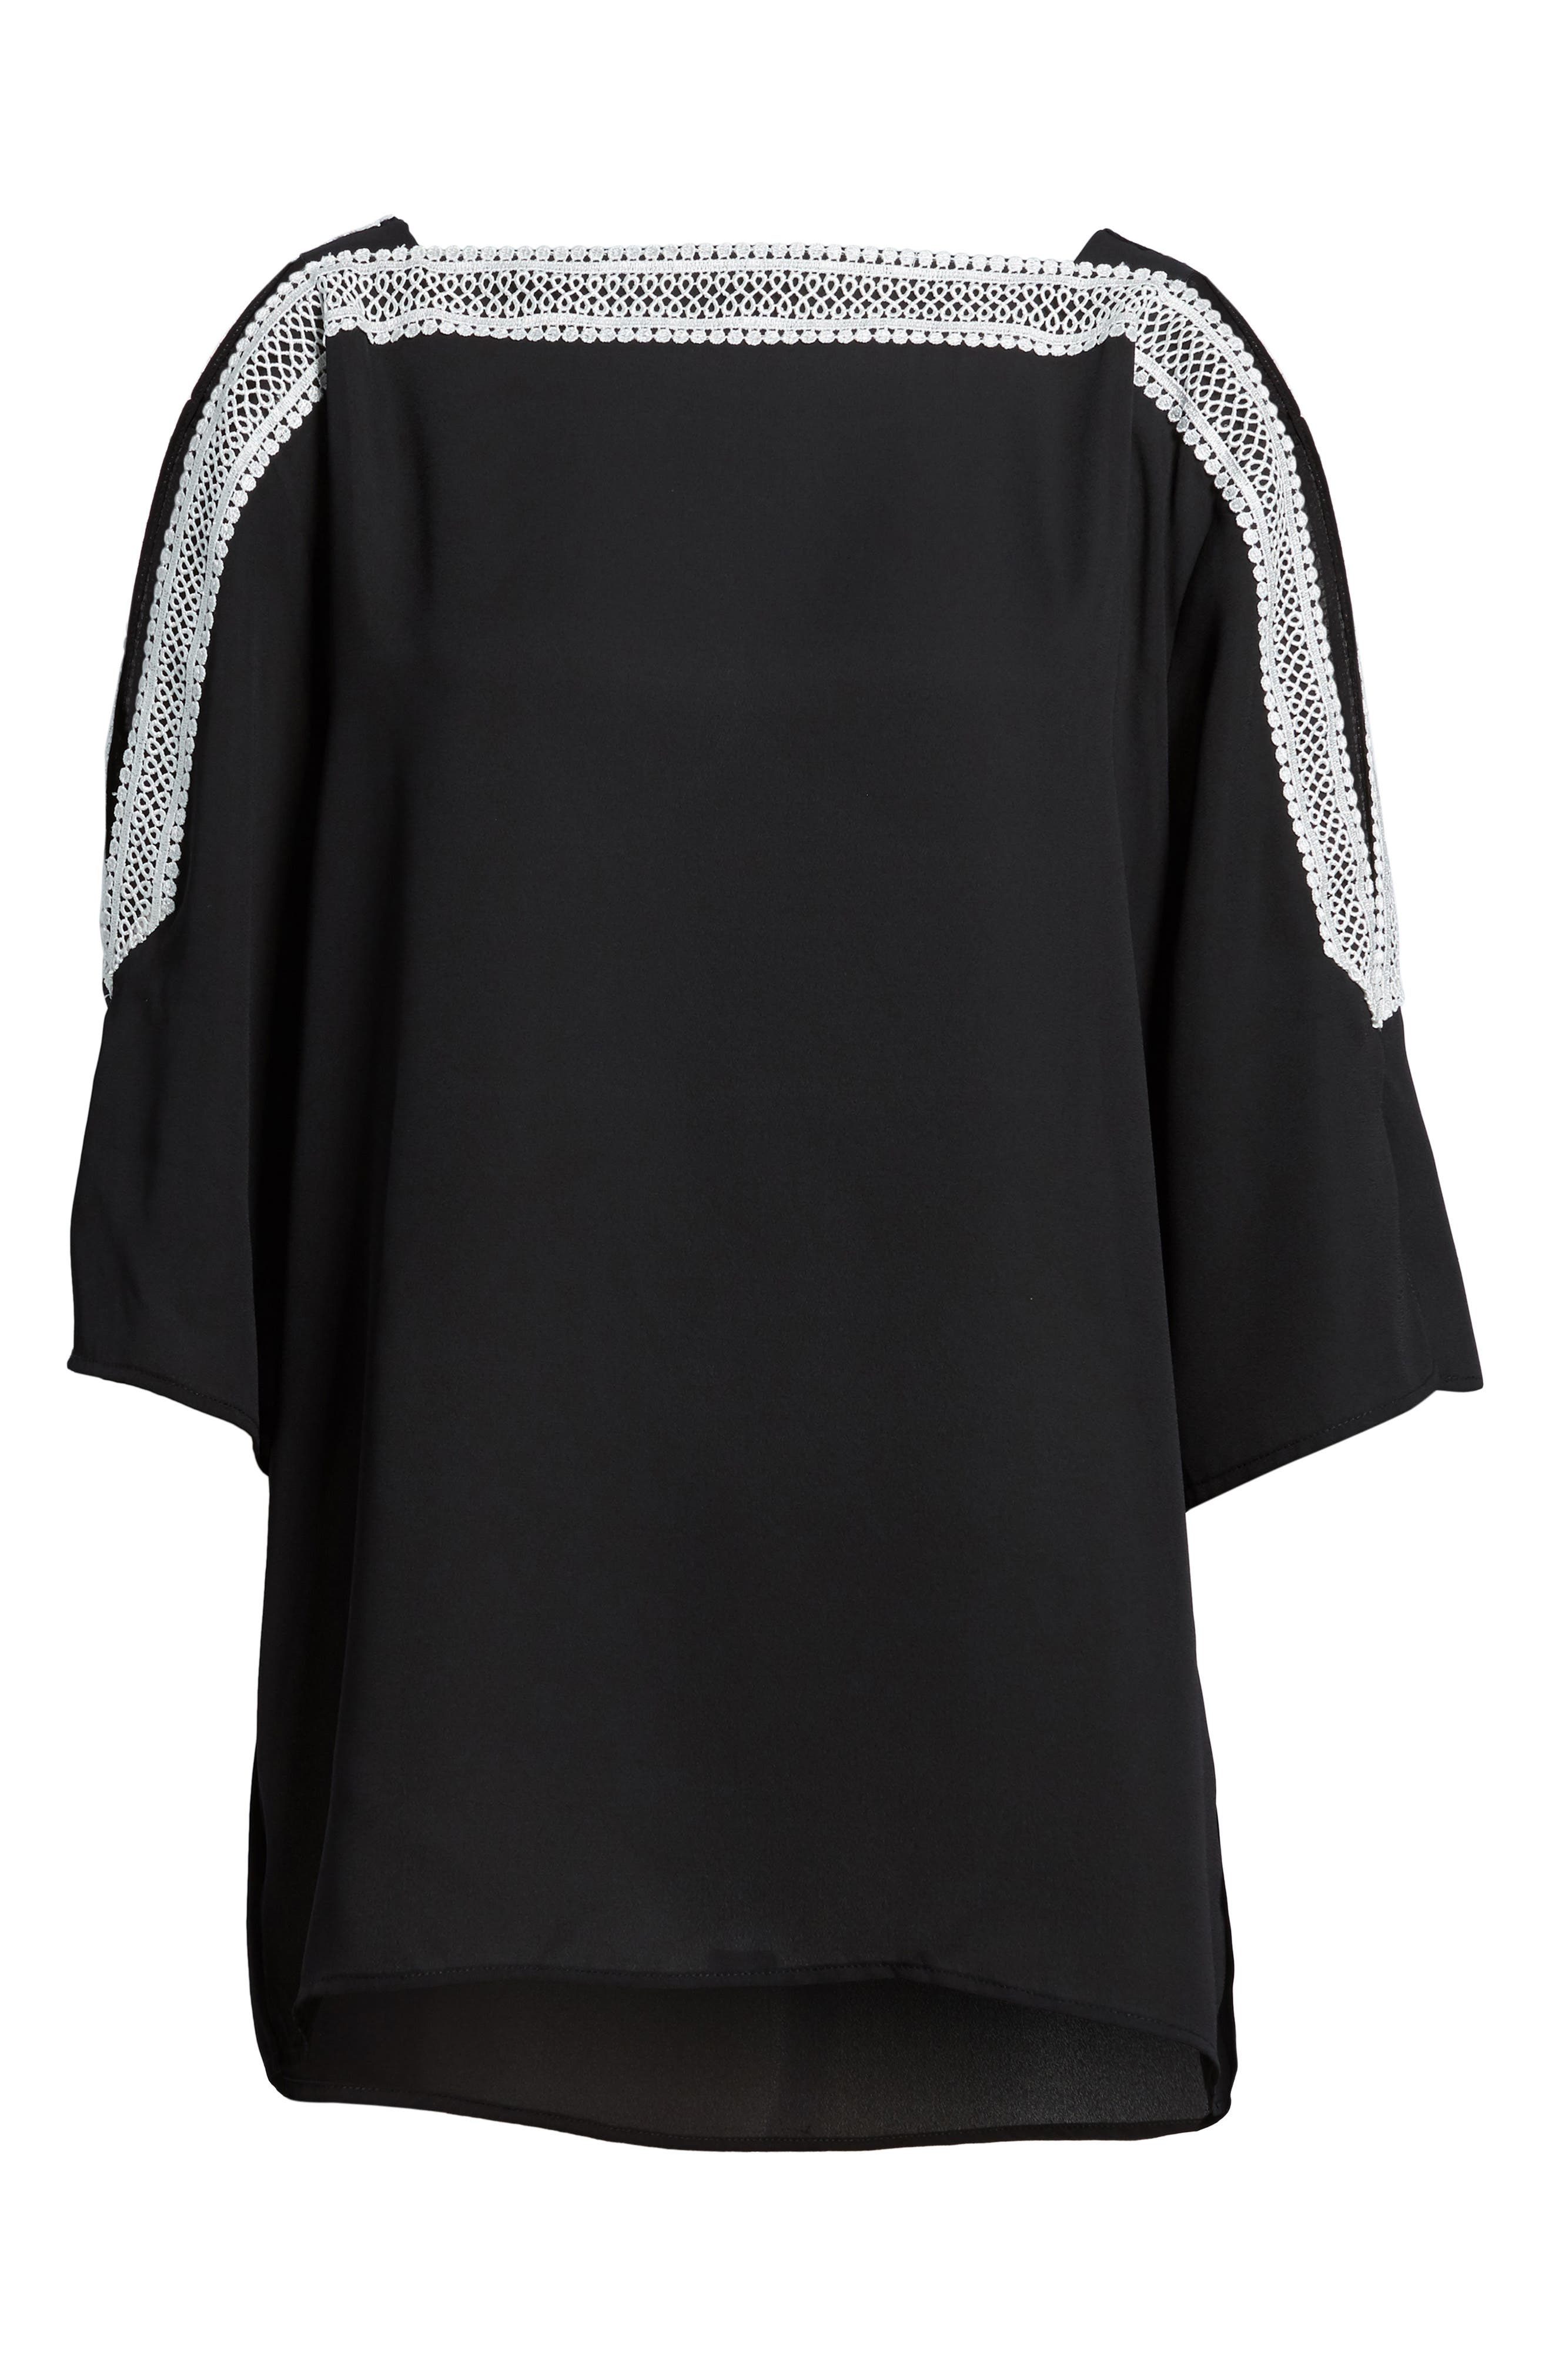 Embroidered Off the Shoulder louse,                             Alternate thumbnail 6, color,                             060-Rich Black